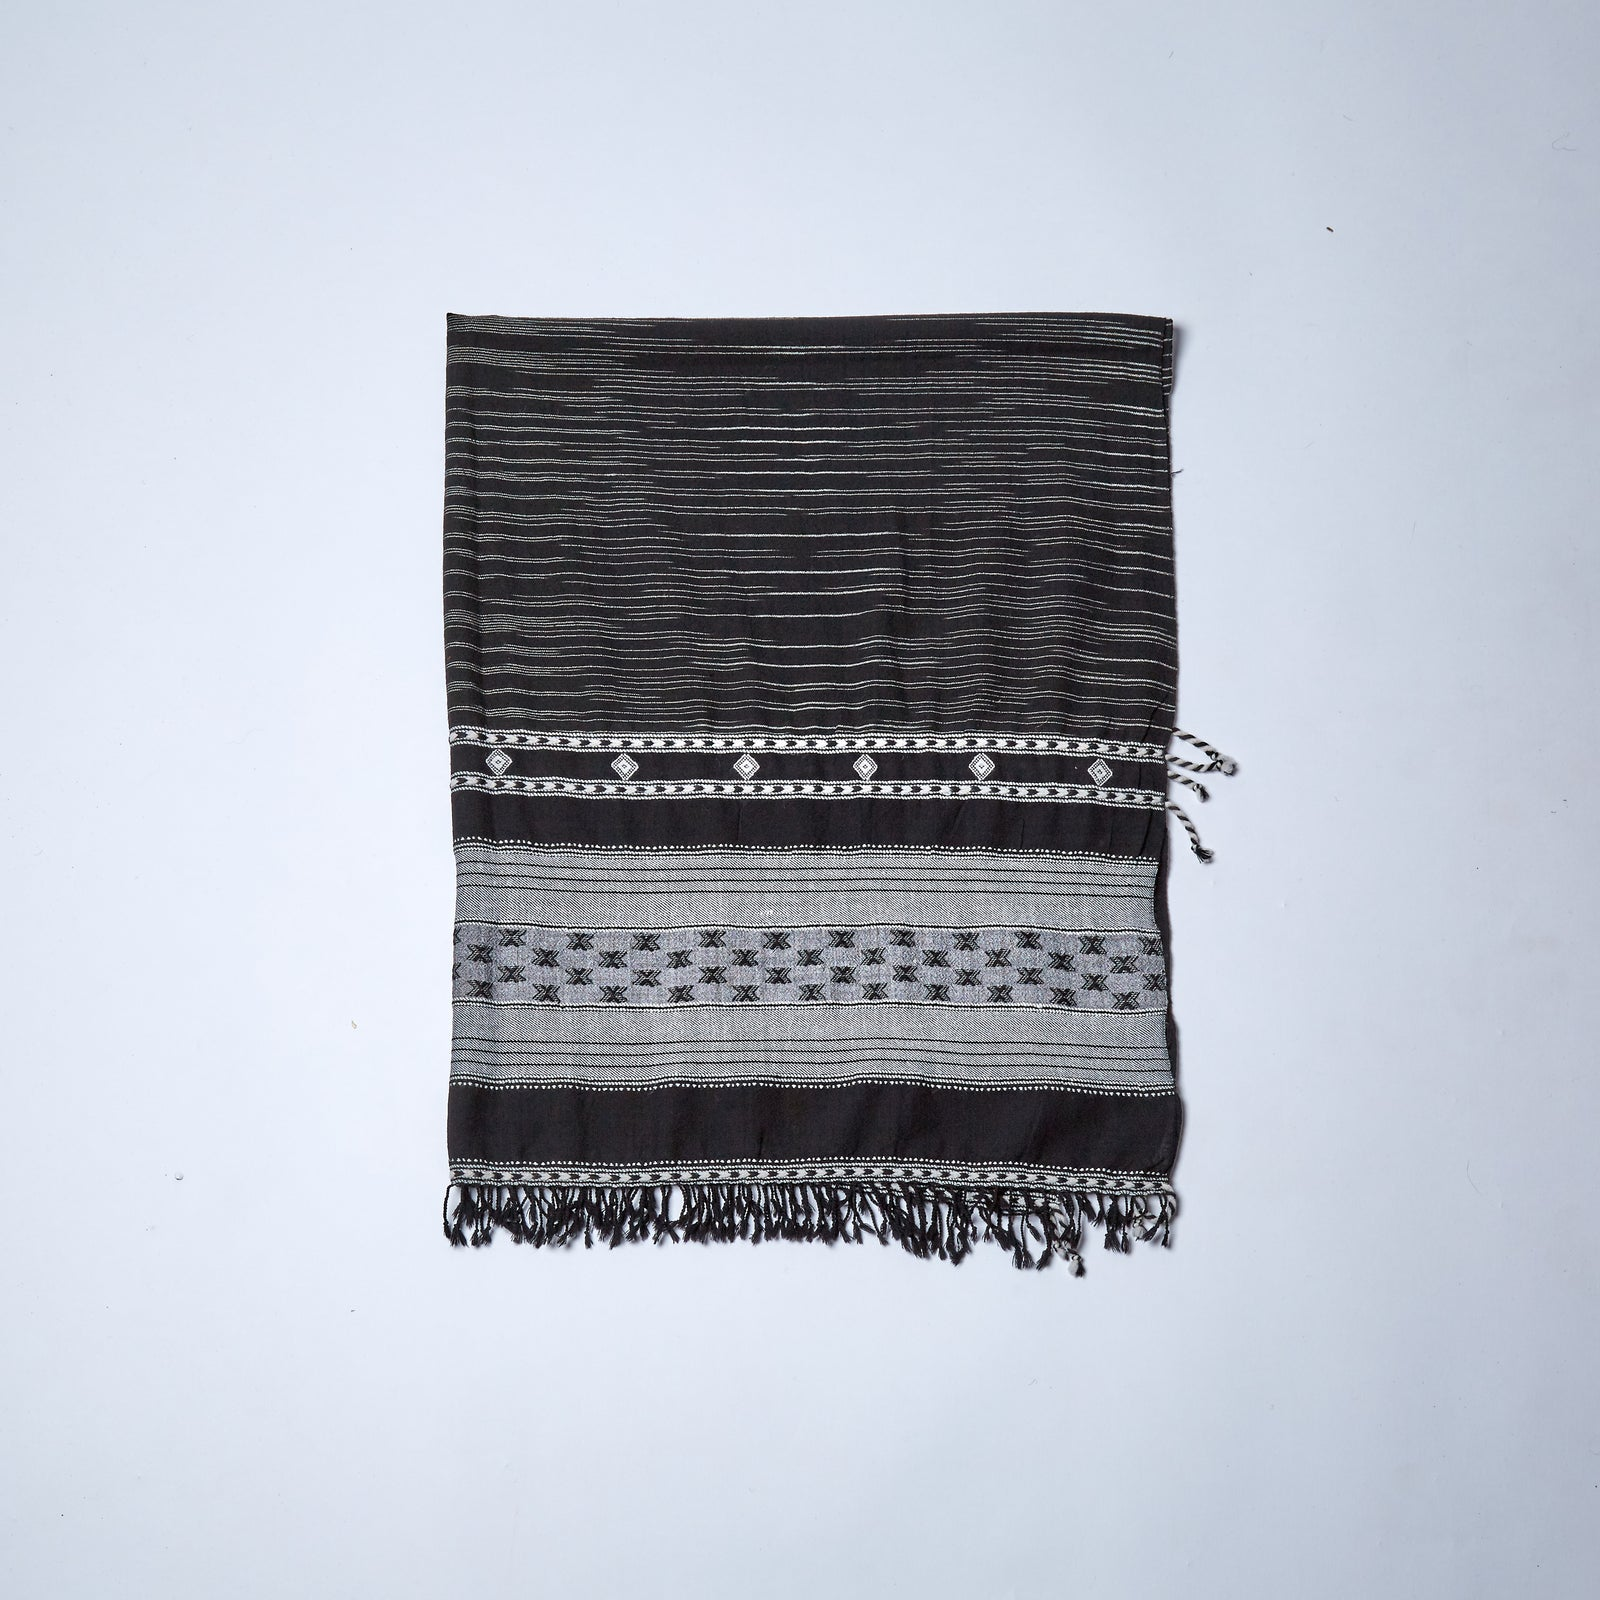 A black and white delight with traditional geometric design.  A go-to shawl for any occasion.